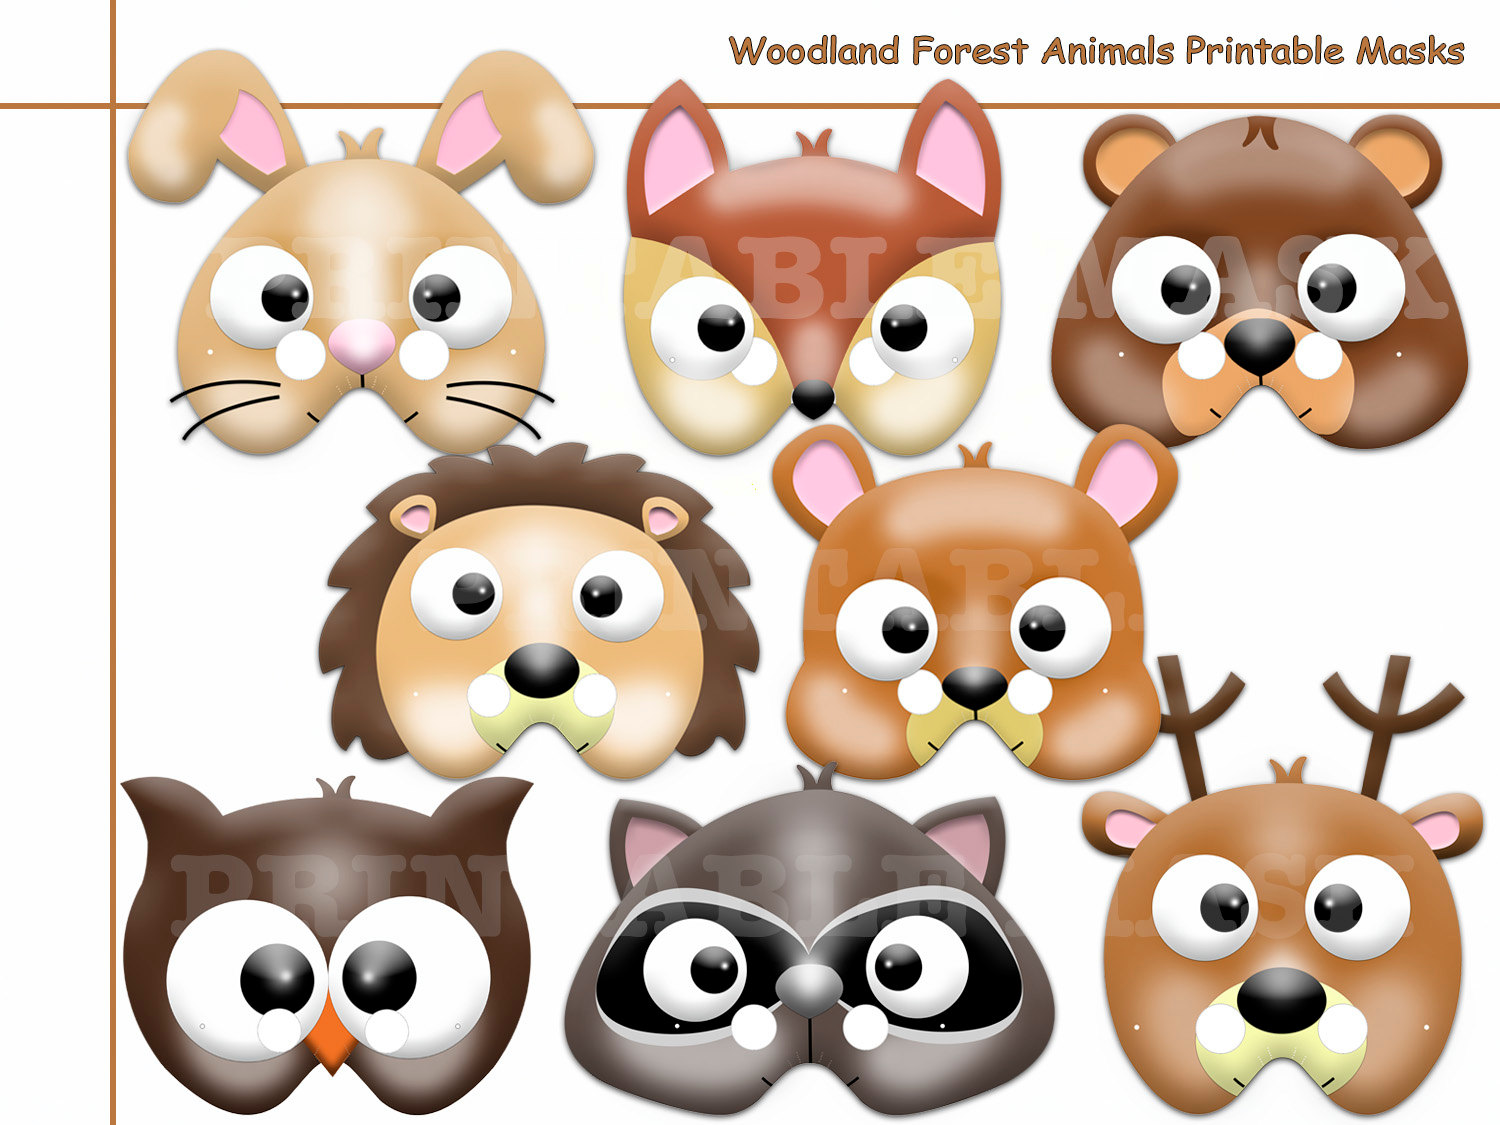 Unique Woodland Forest Animals Printable